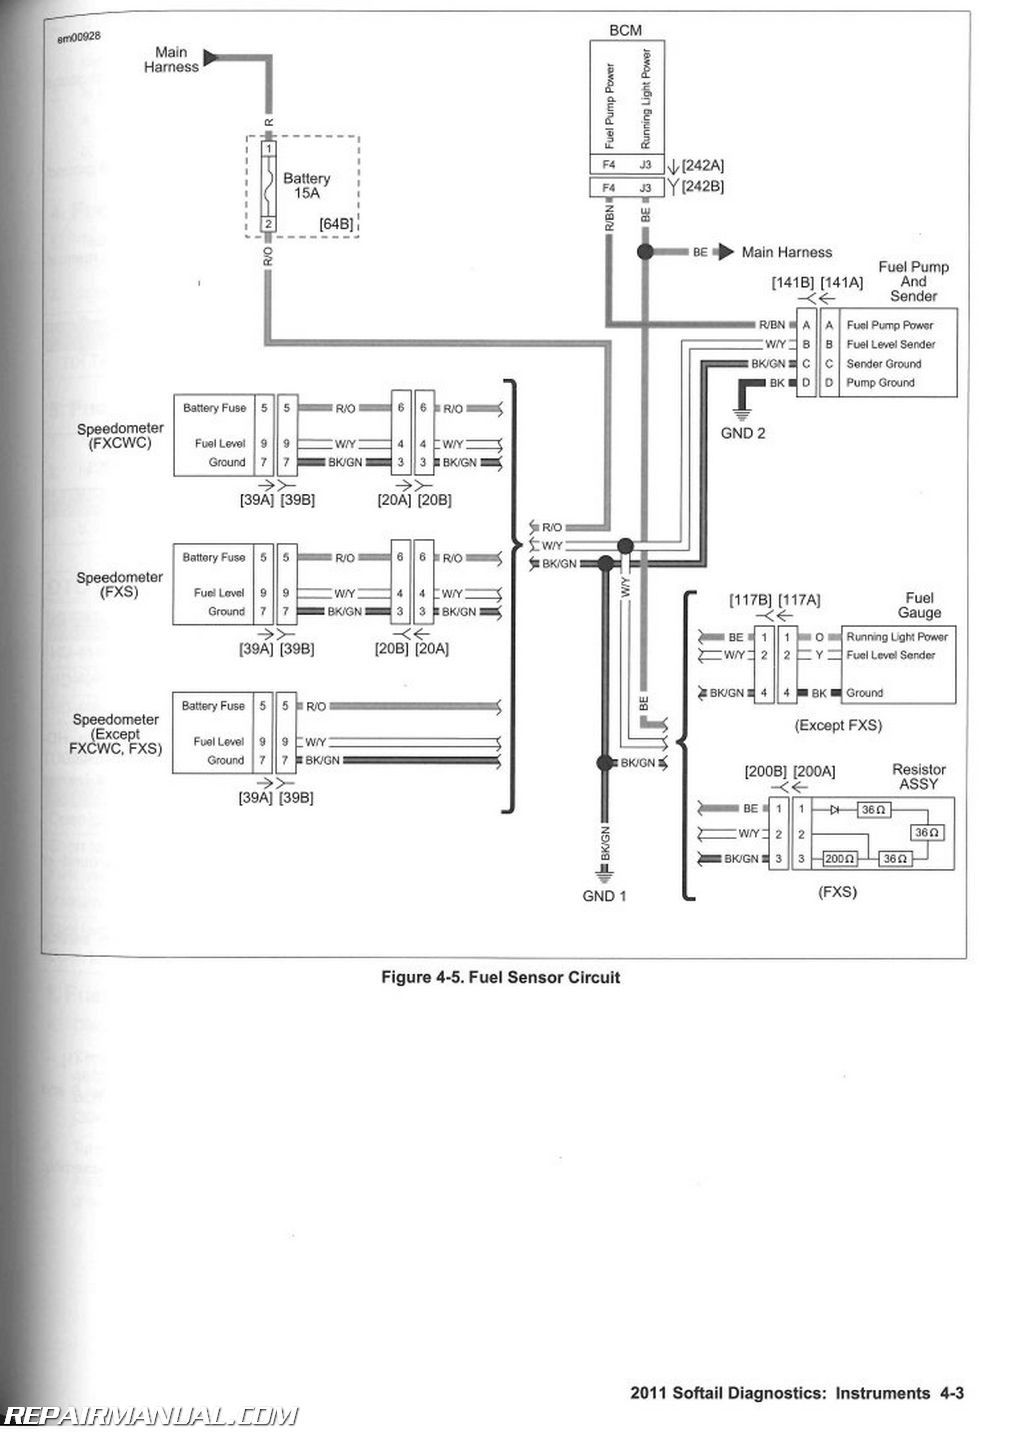 hight resolution of 2011 harley davidson softail motorcycle electrical diagnostic manual rh pinterest com dyna coil wiring diagram harley electronic ignition wiring diagram